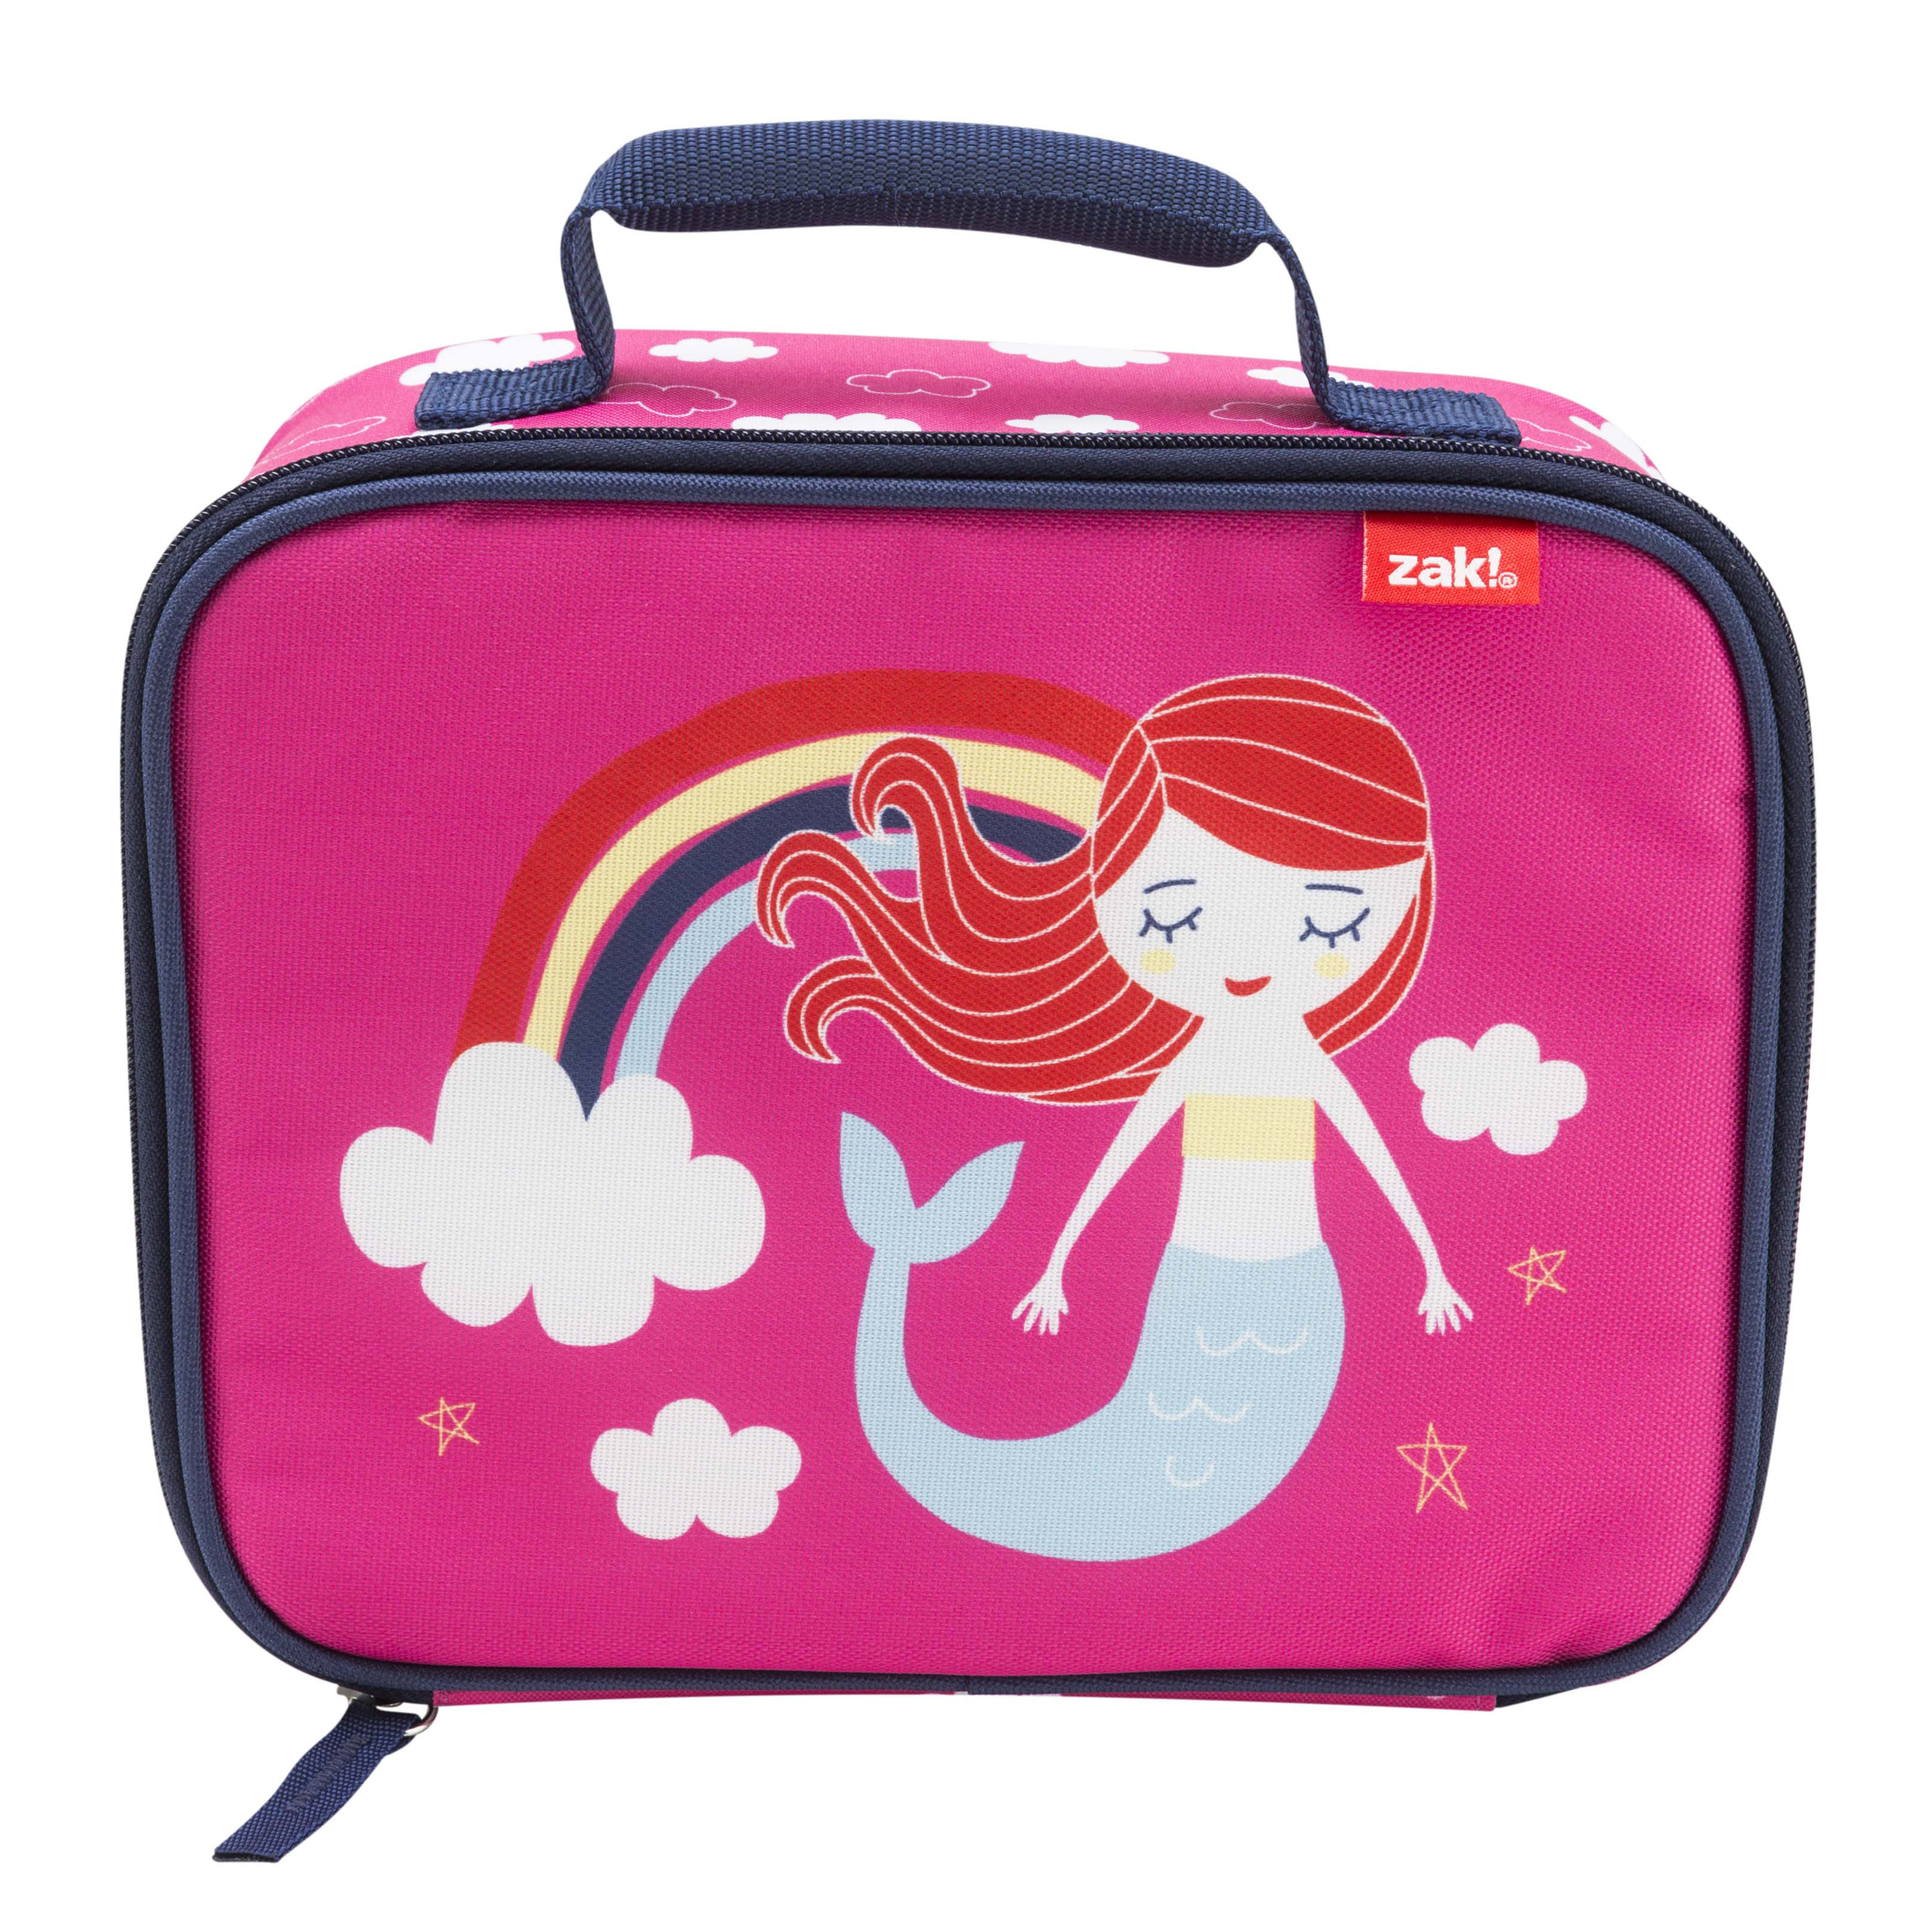 Happy Things Insulated Reusable Lunch Bag, Mermaids slideshow image 2